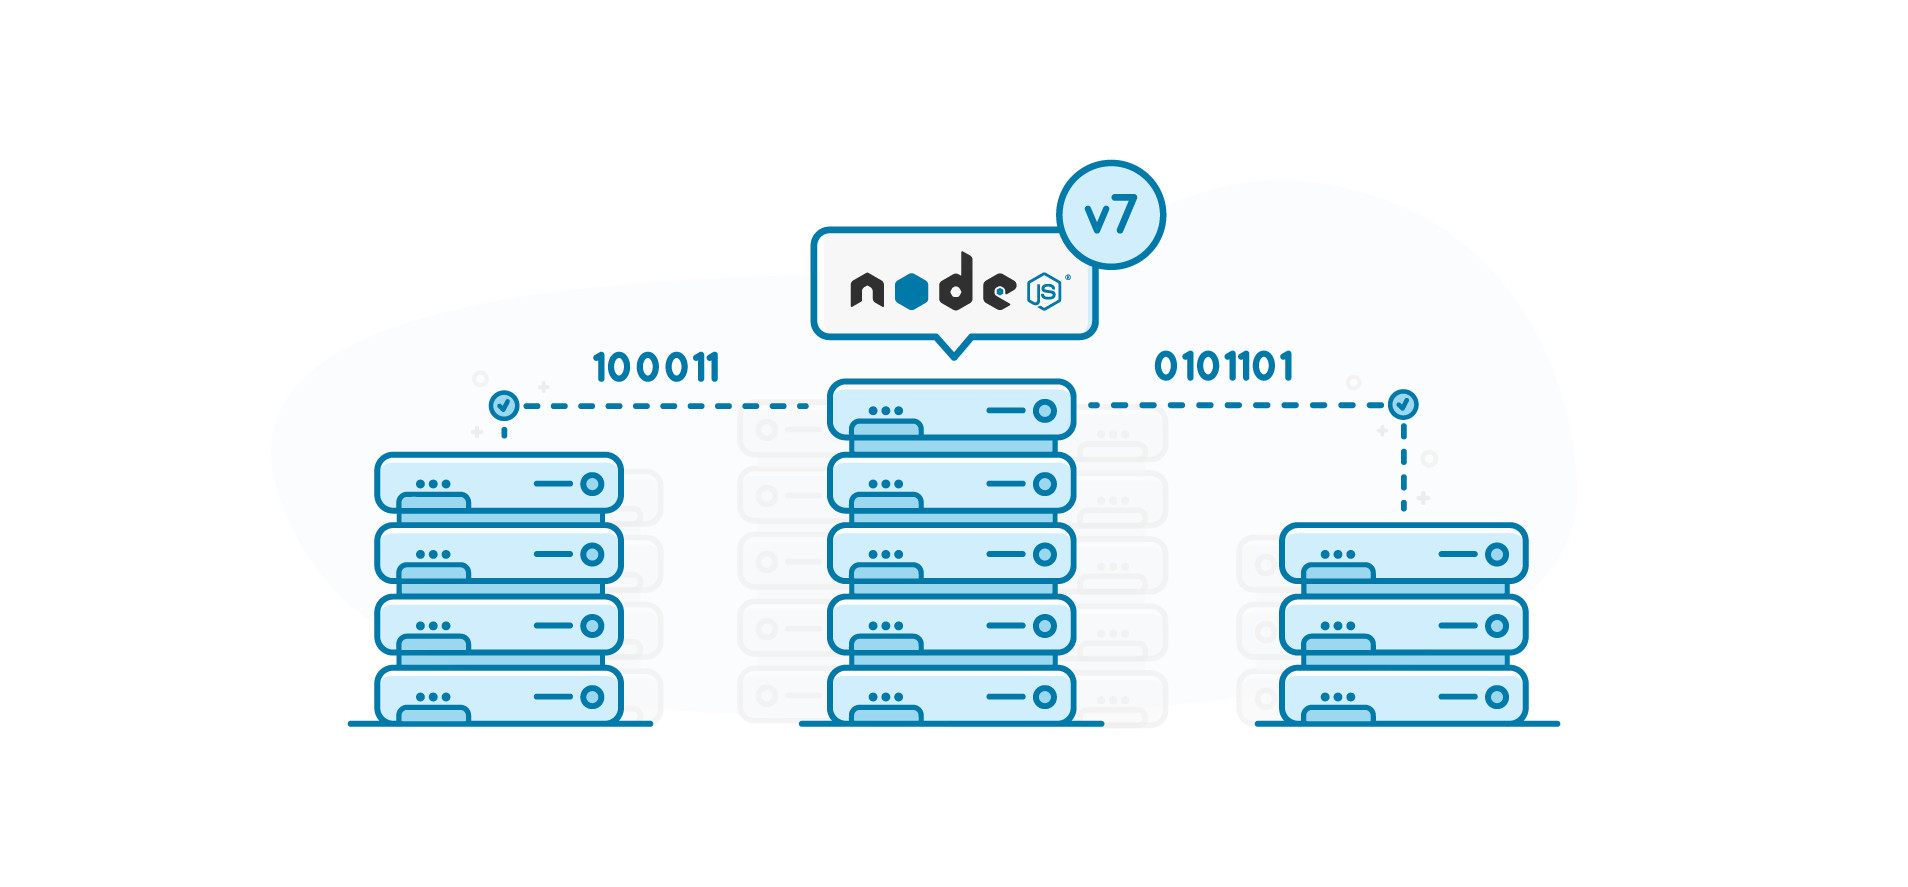 Node js v7 – URLs, deprecation warnings and a better